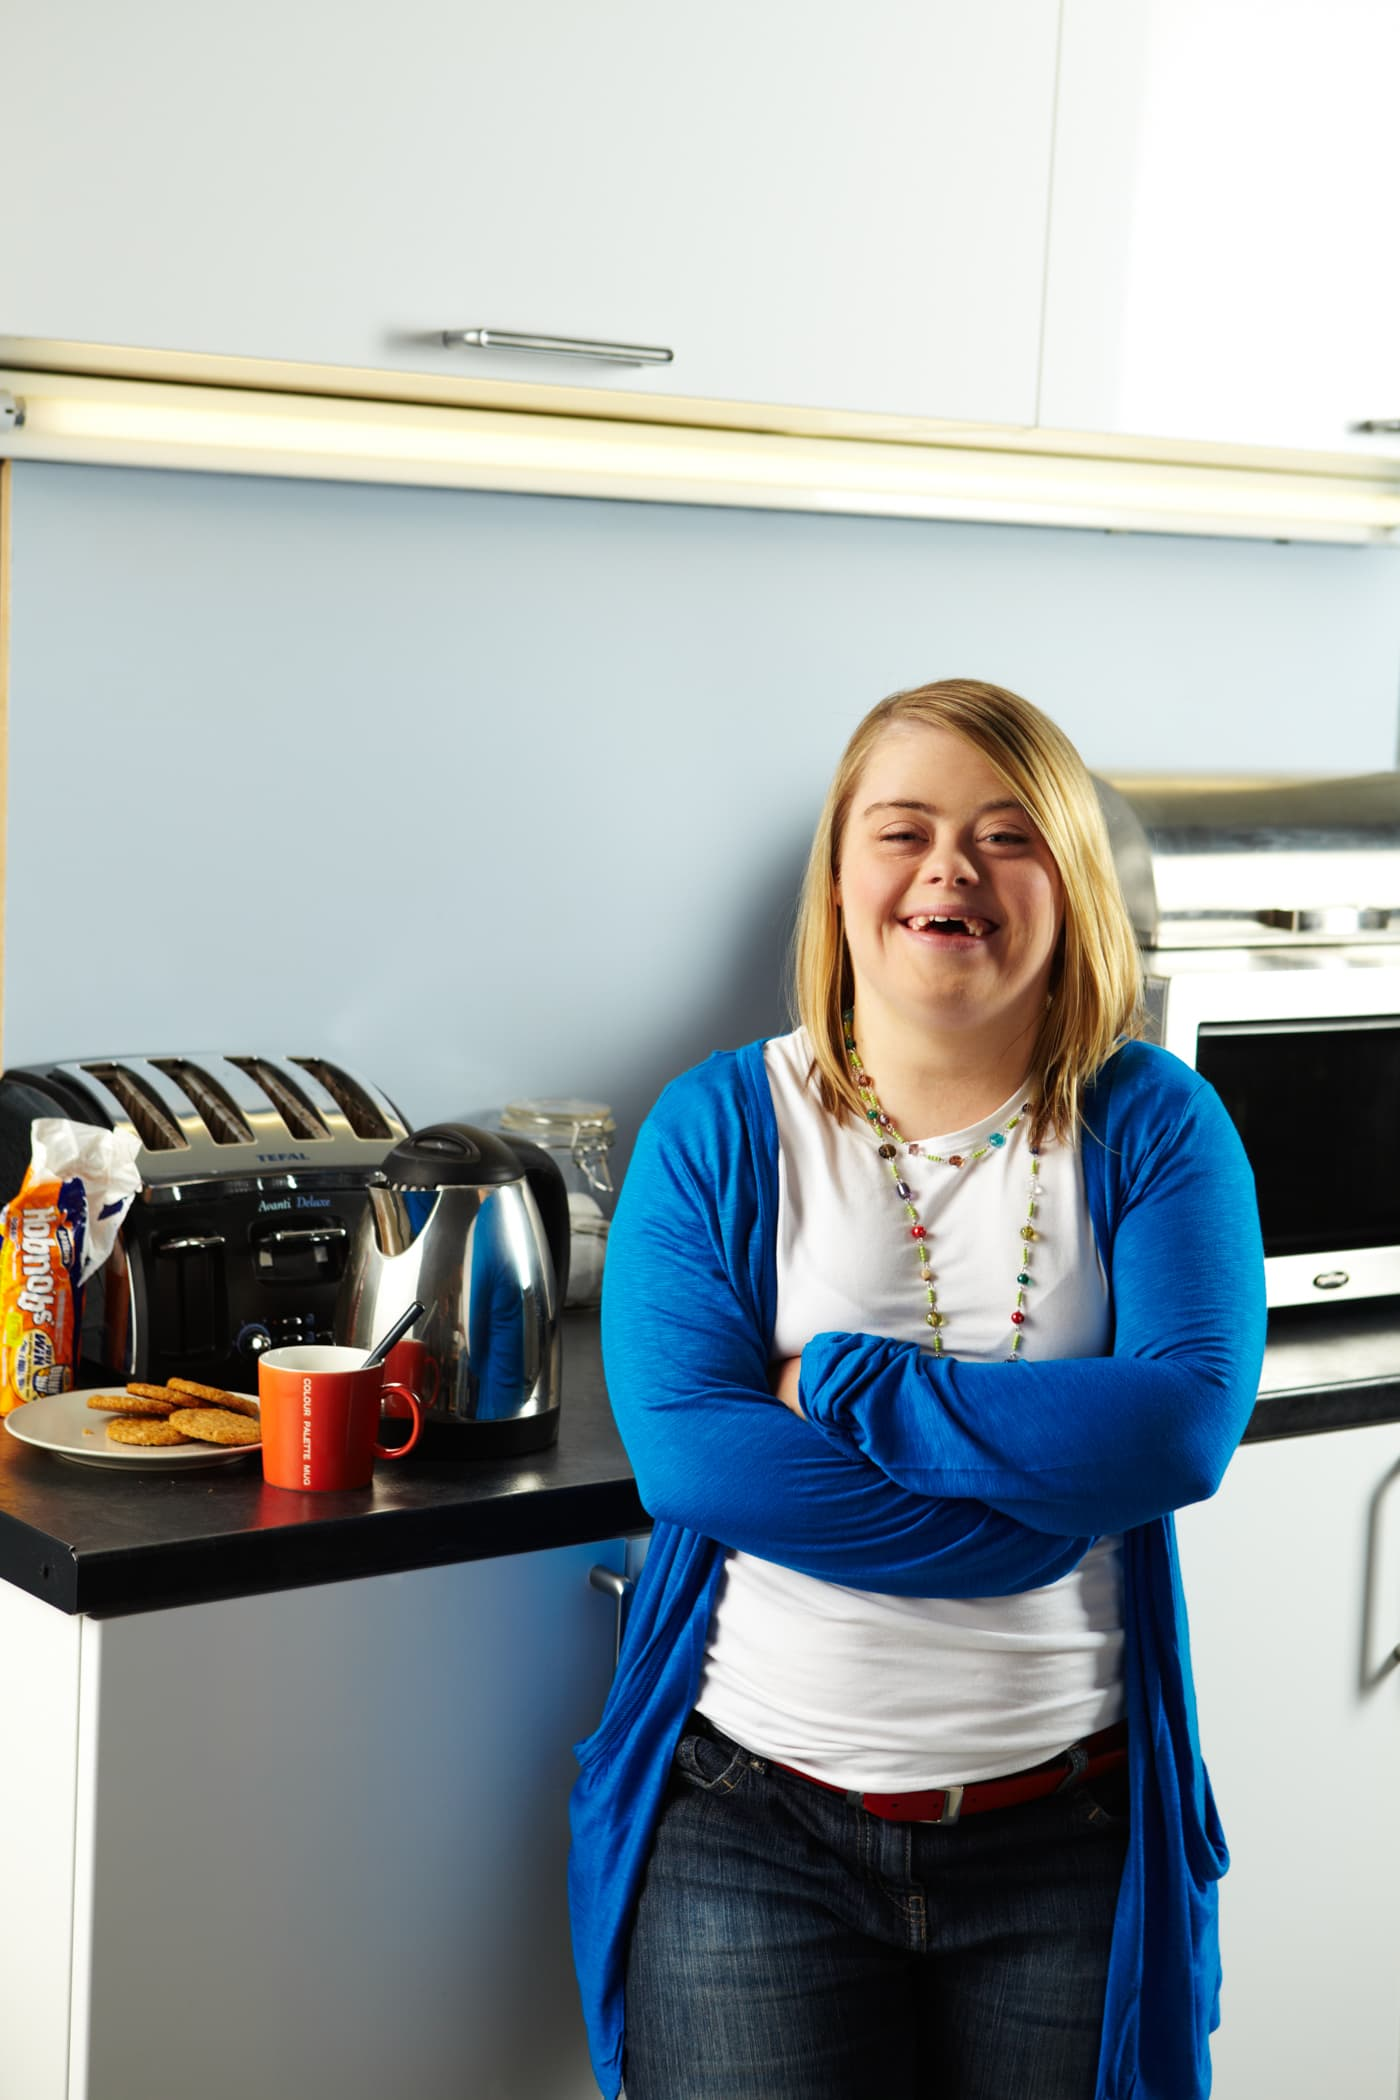 Learning Disabilities 2 - Just Checking